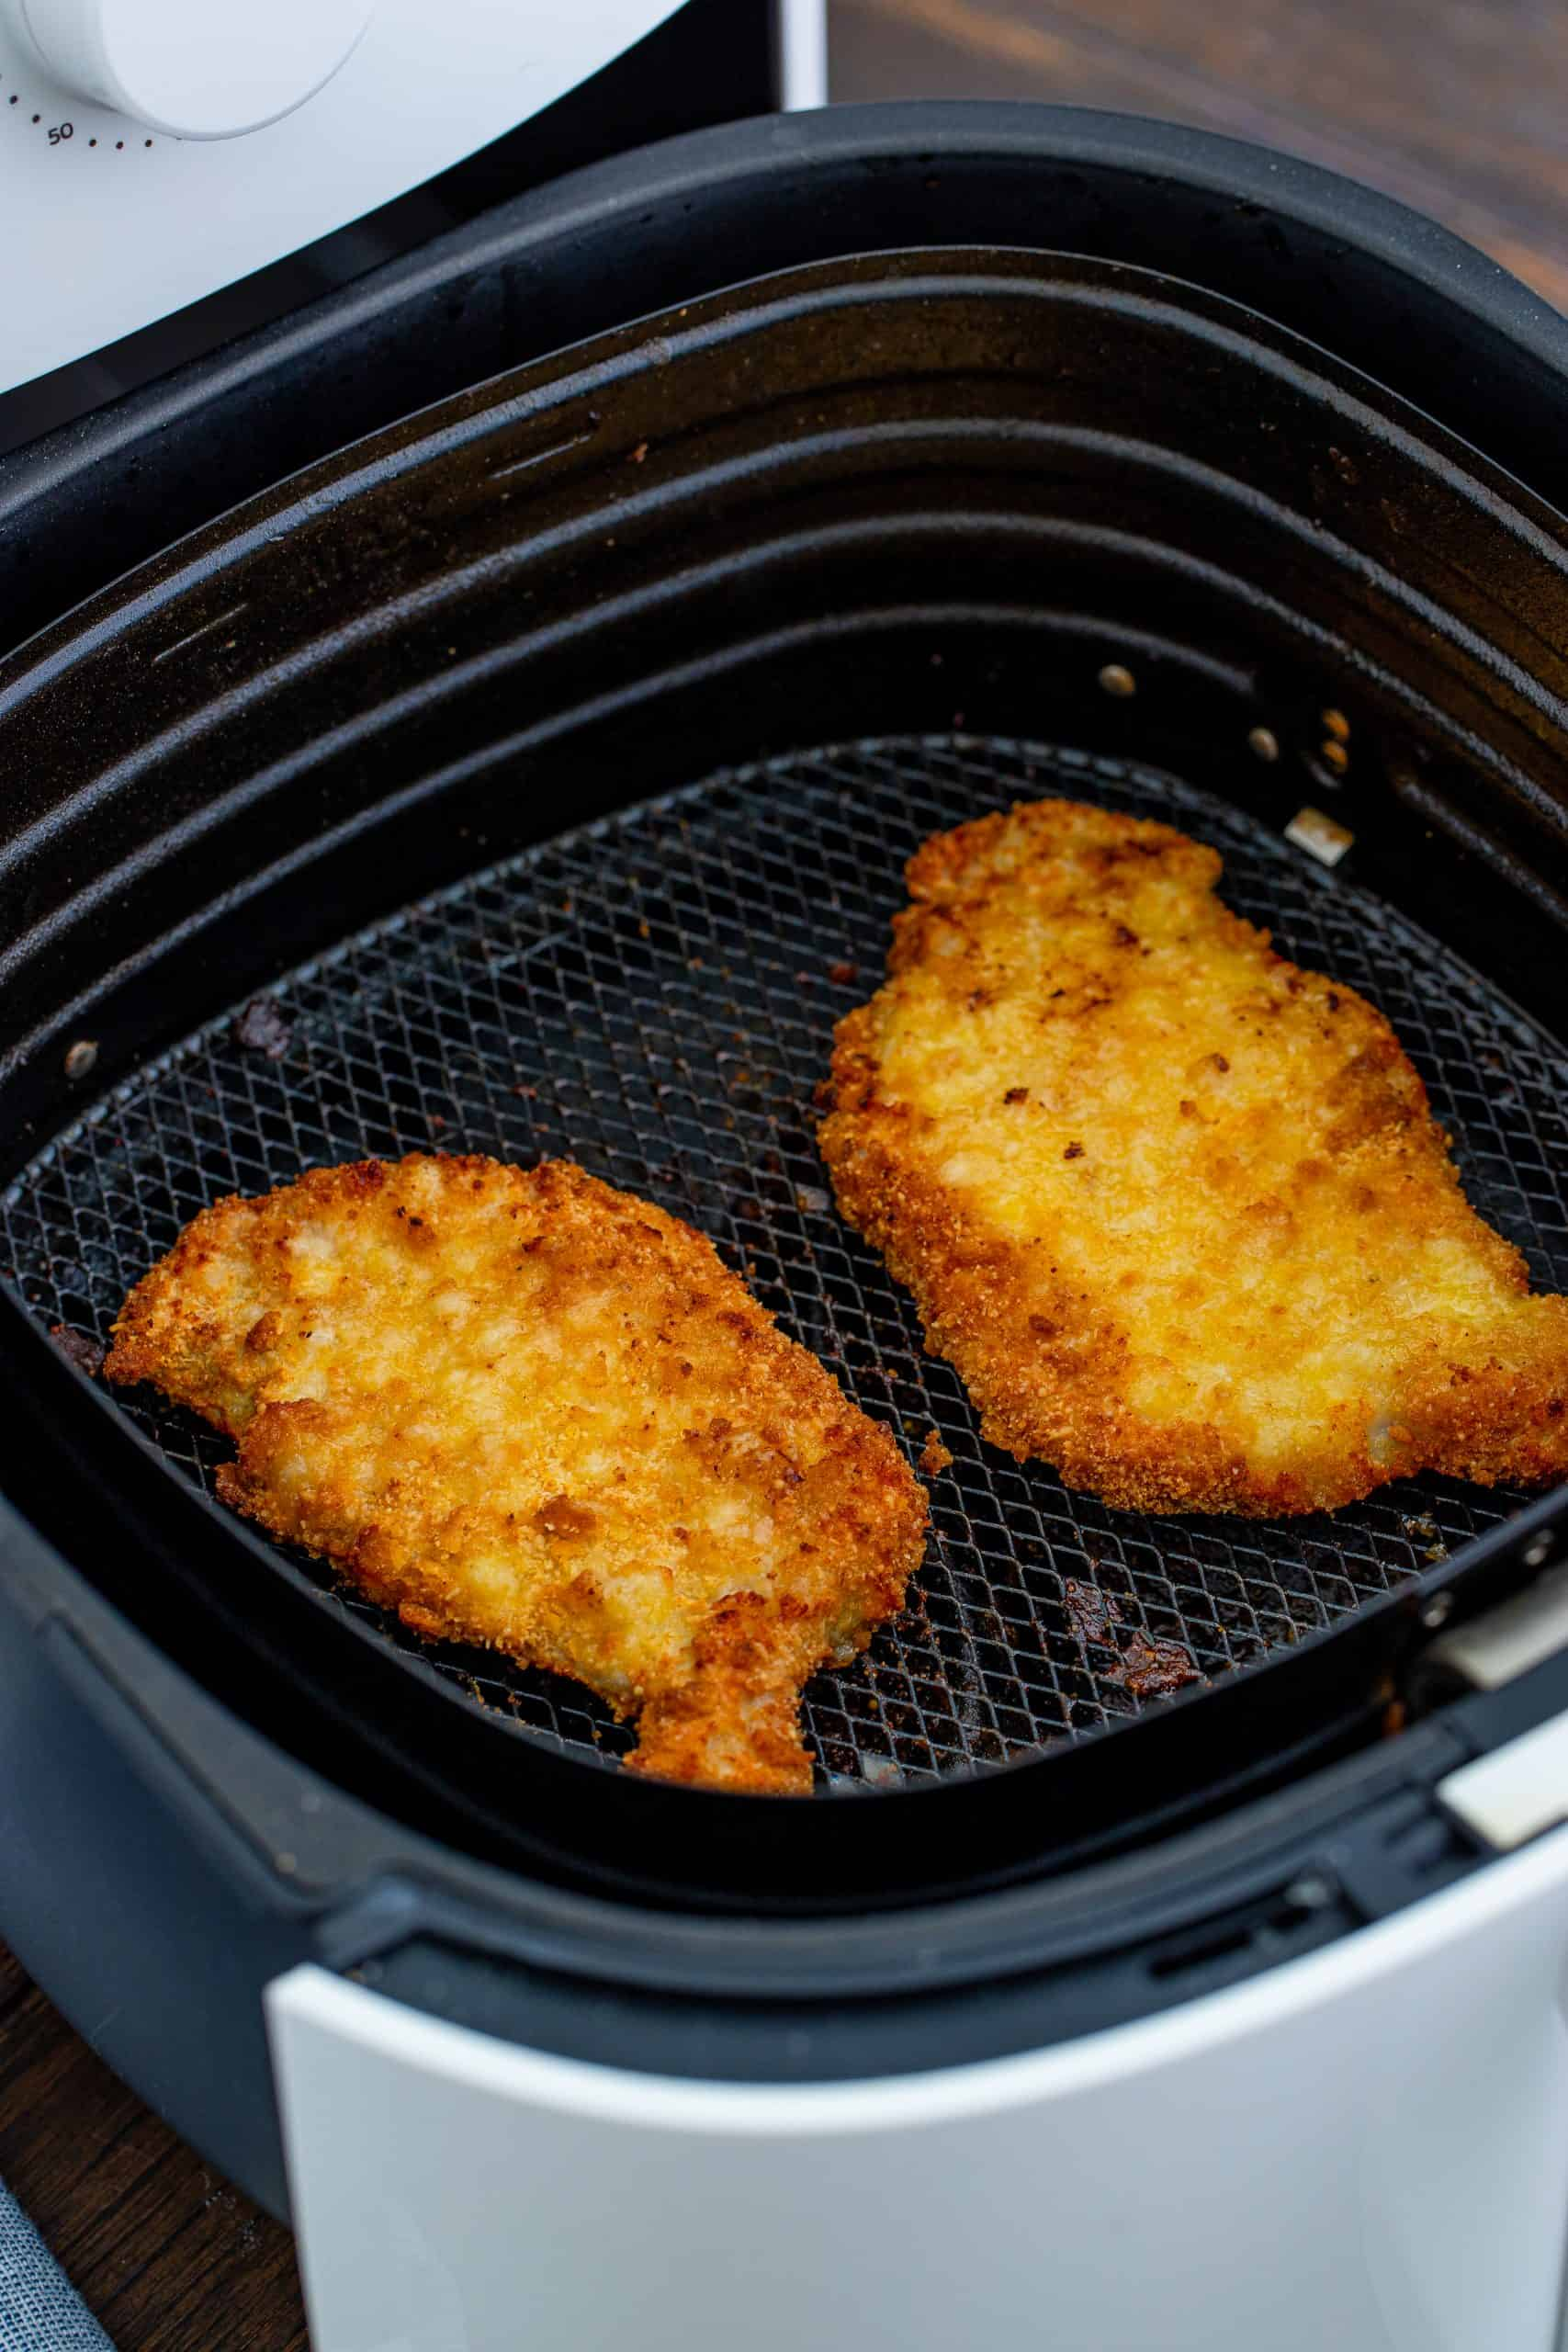 Two Air Fryer Pork Chops shown fully cooked in the air fryer basket.